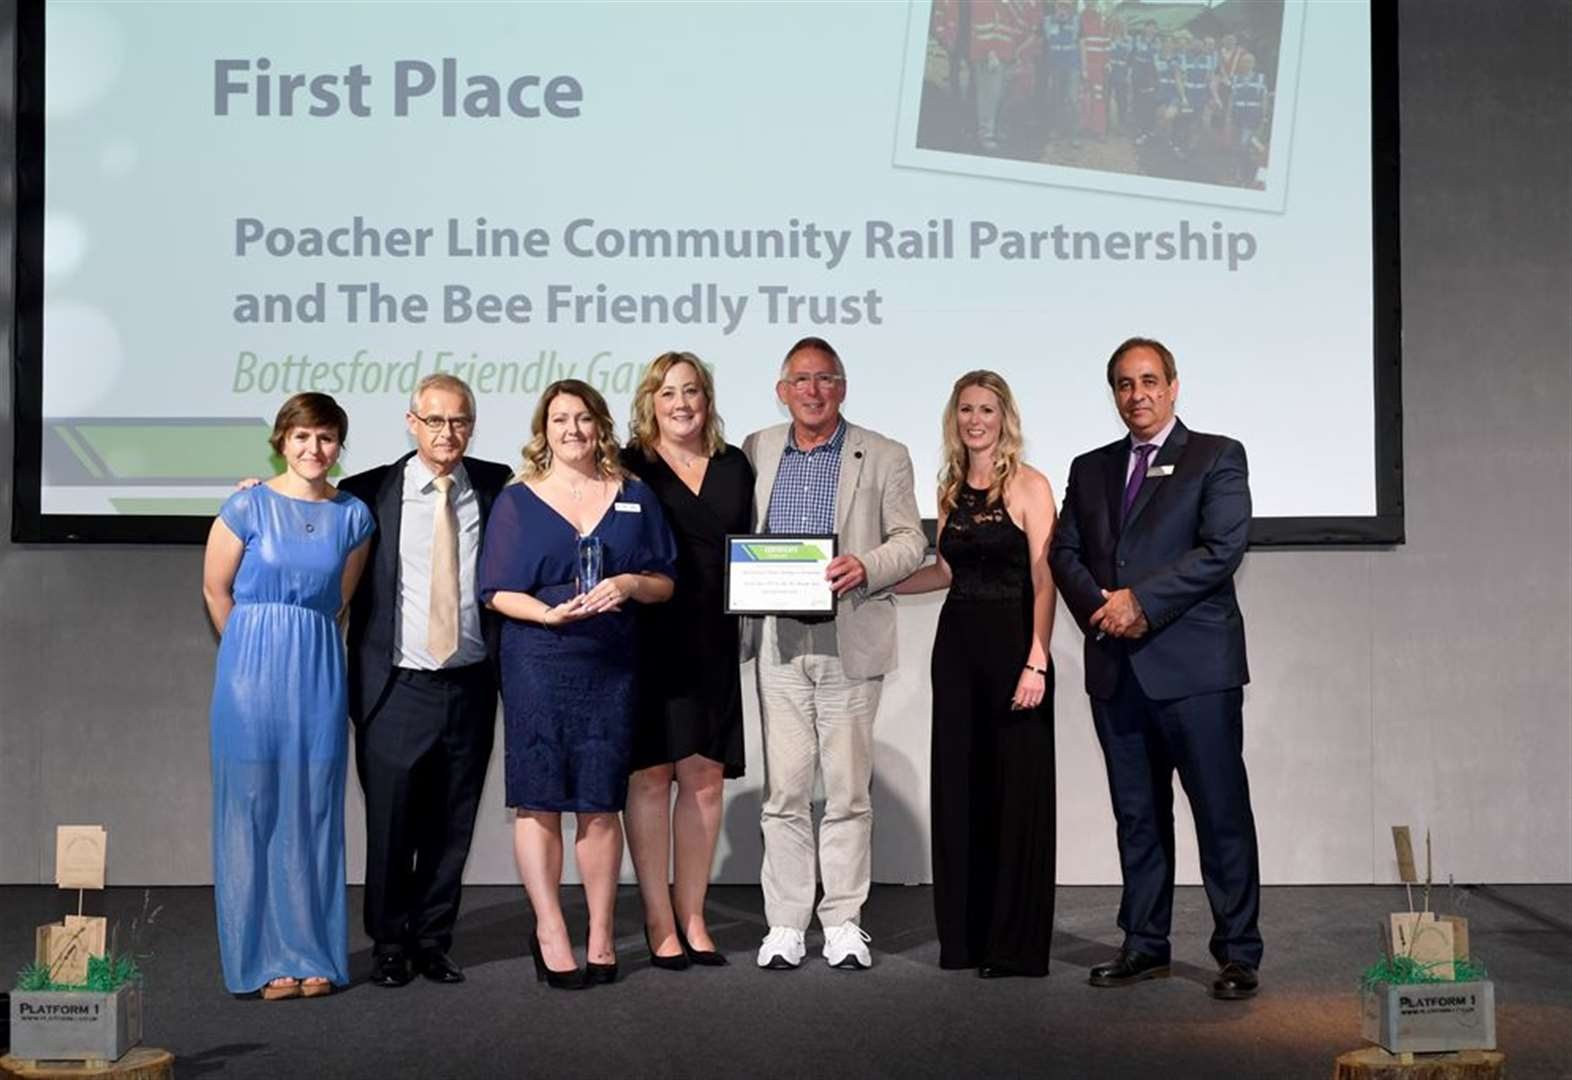 Bottesford 'Friendly Garden' wins first place at national rail awards